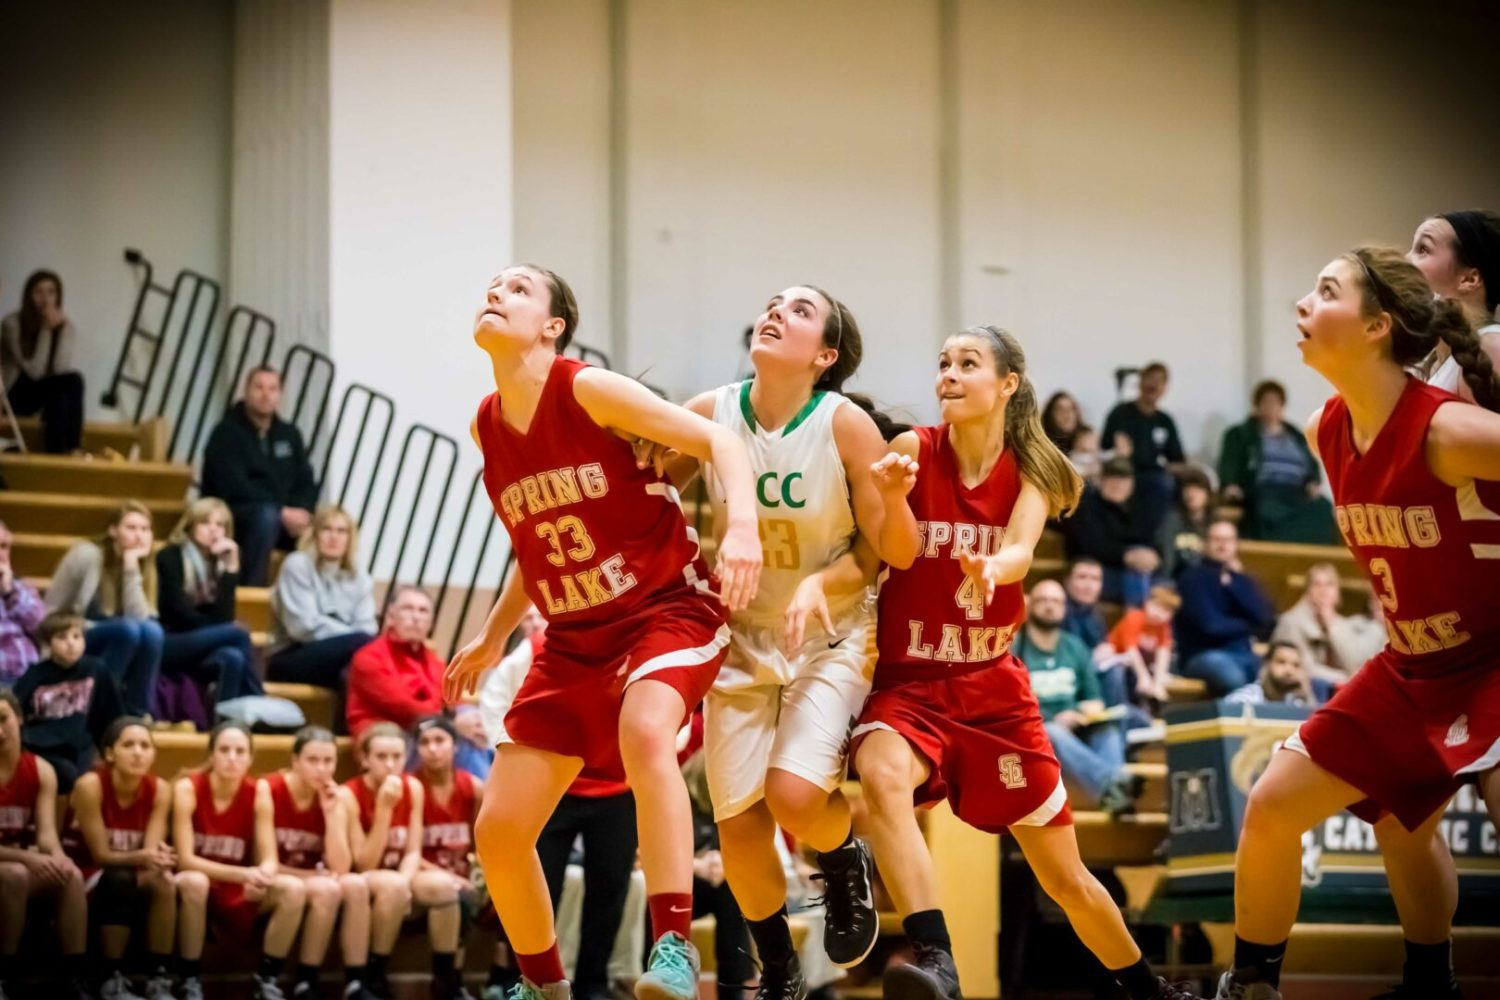 Photos from Spring Lake's trouncing of Muskegon Catholic in Lakes 8 girls basketball opener